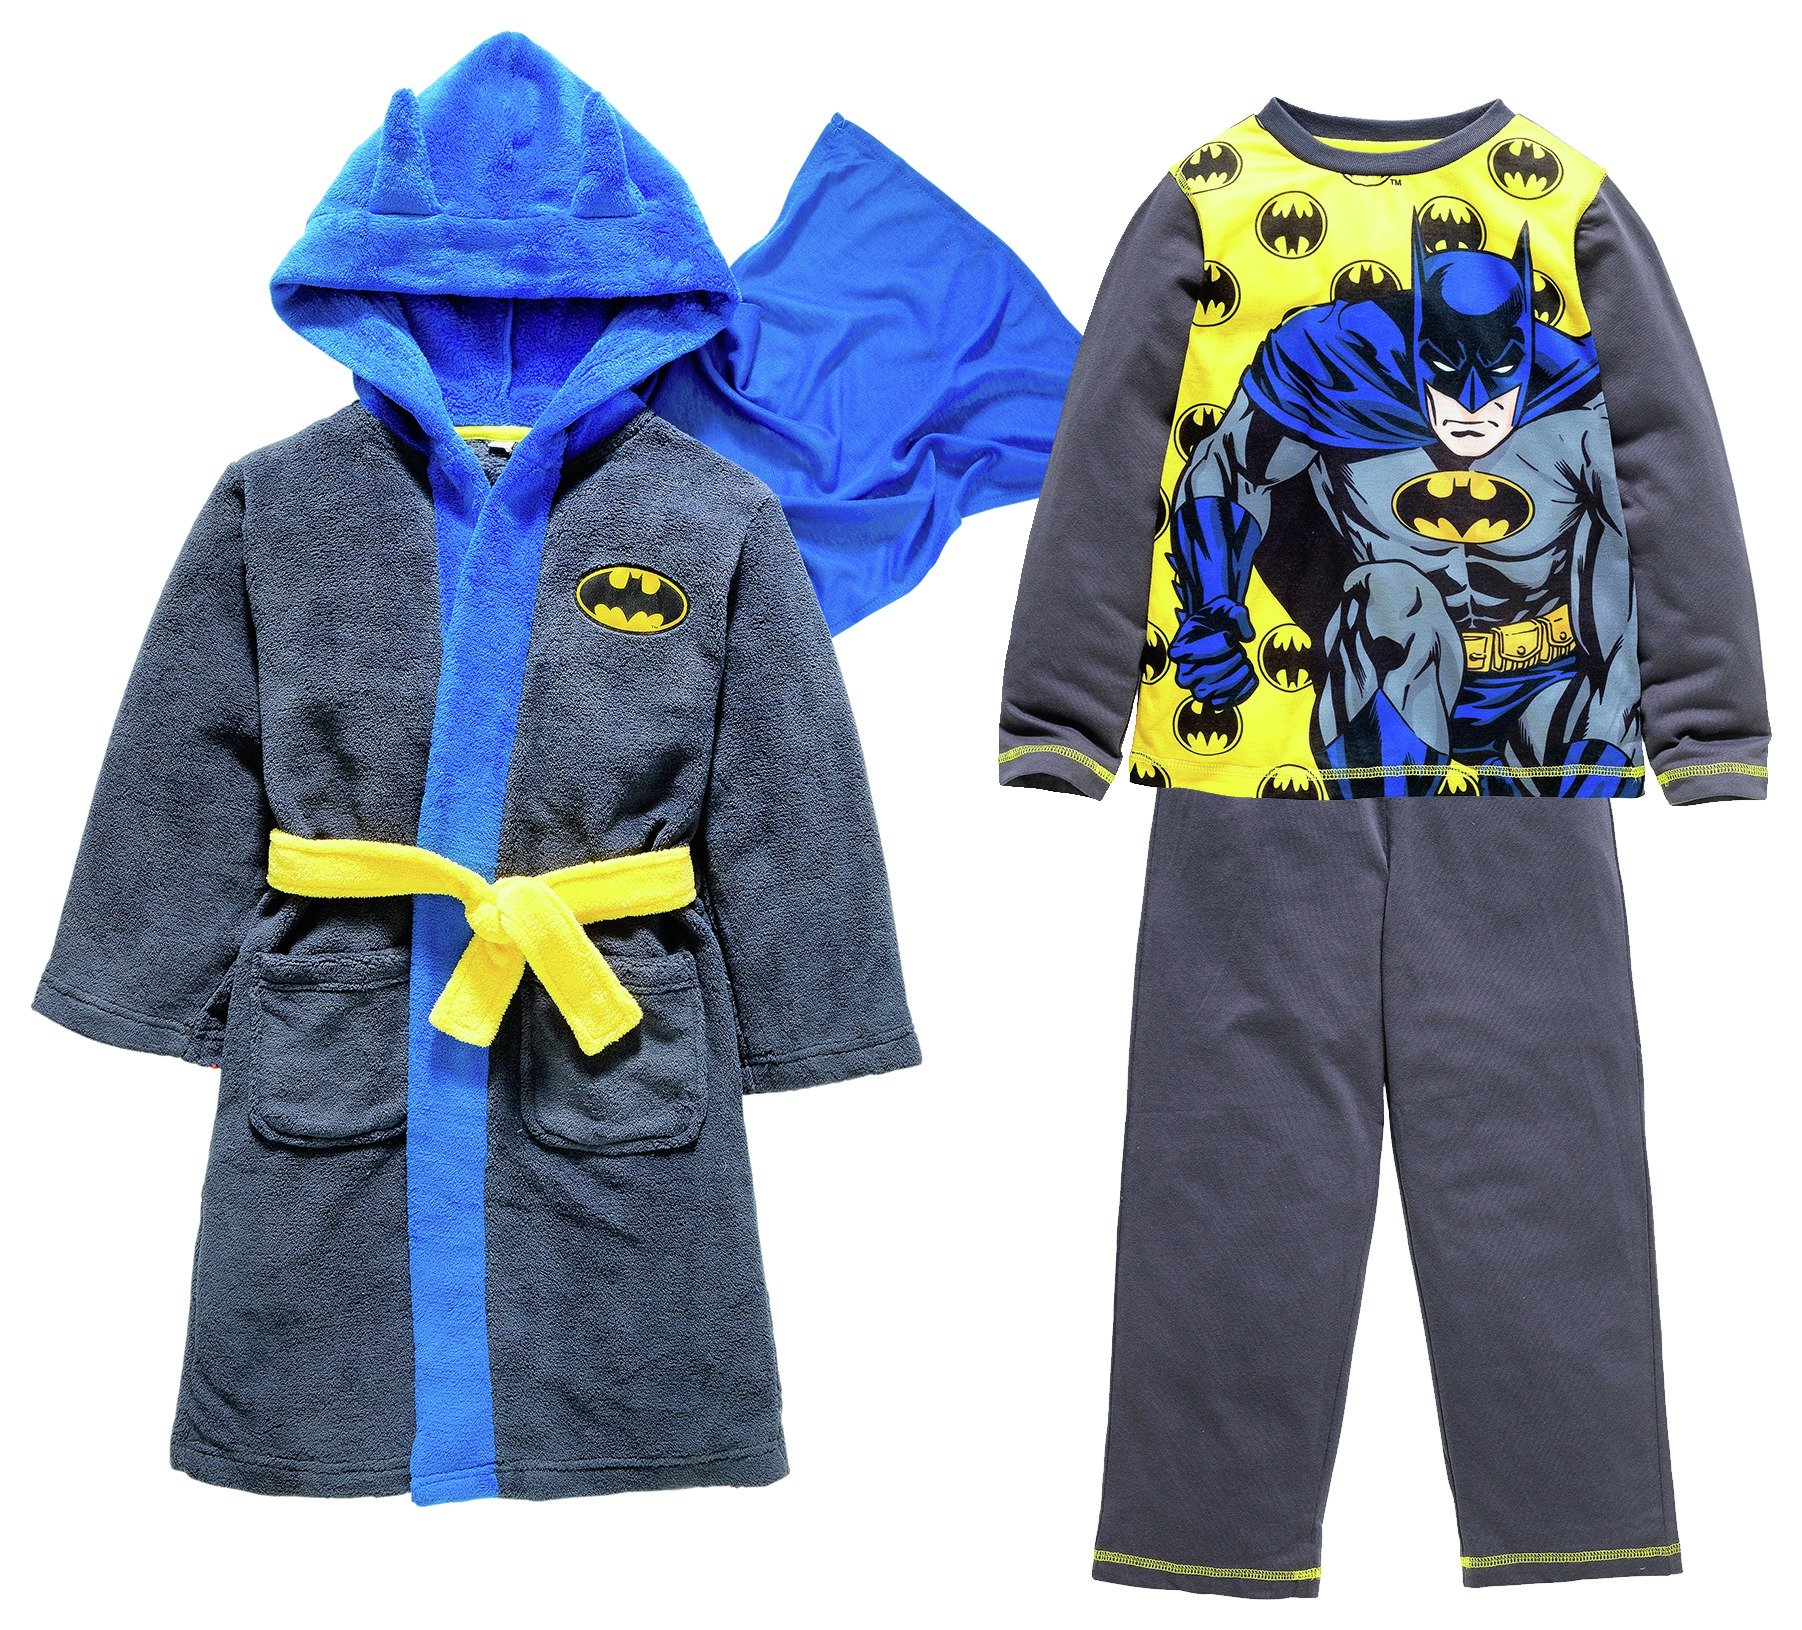 Image of Batman - Robe and - Pyjamas - 3-4 Years